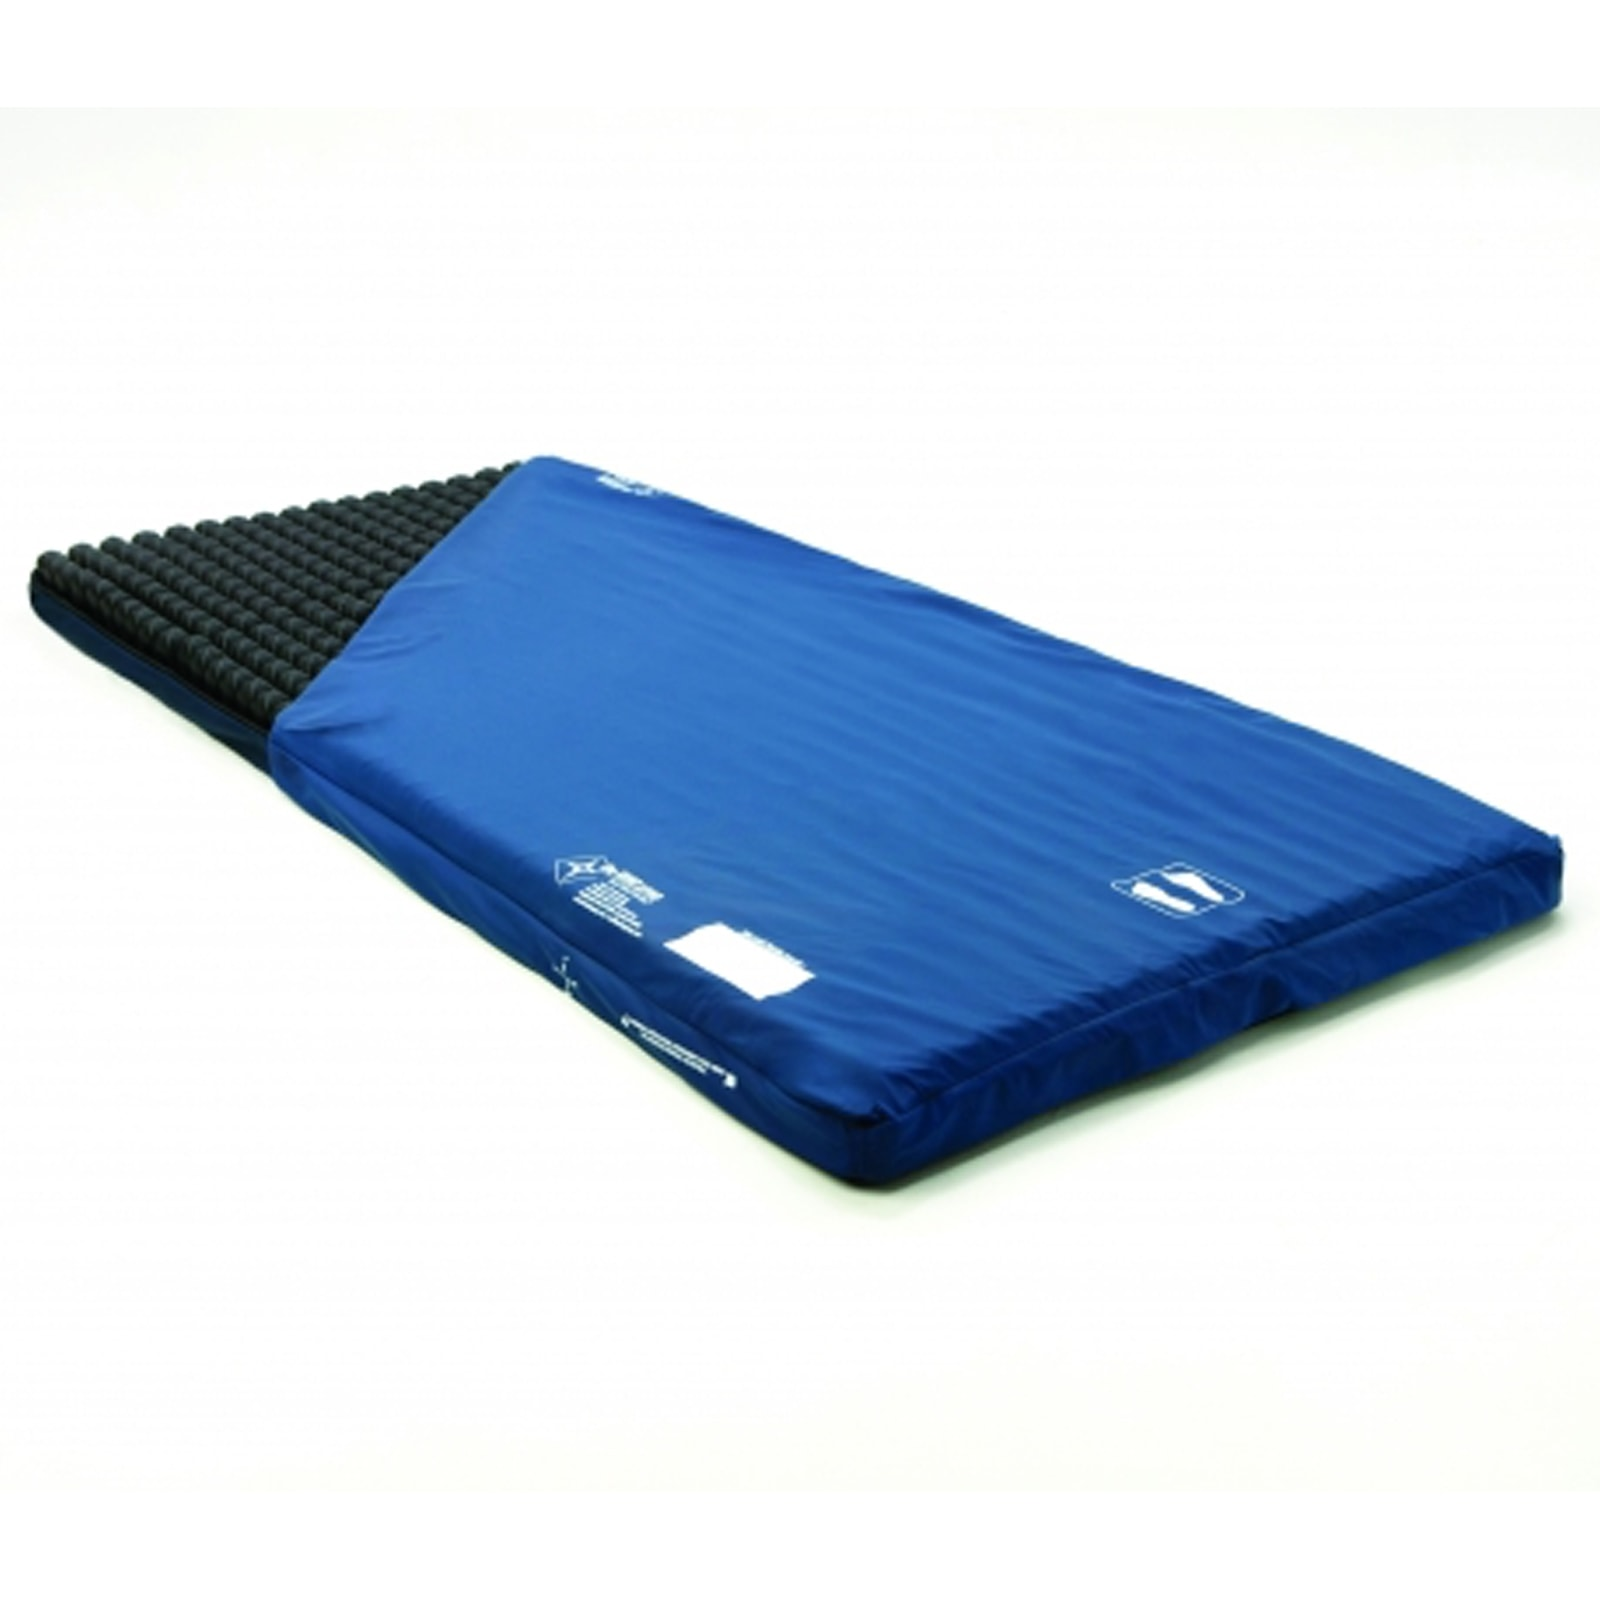 ROHO®Mattress Overlay System Enclosure Cover Product